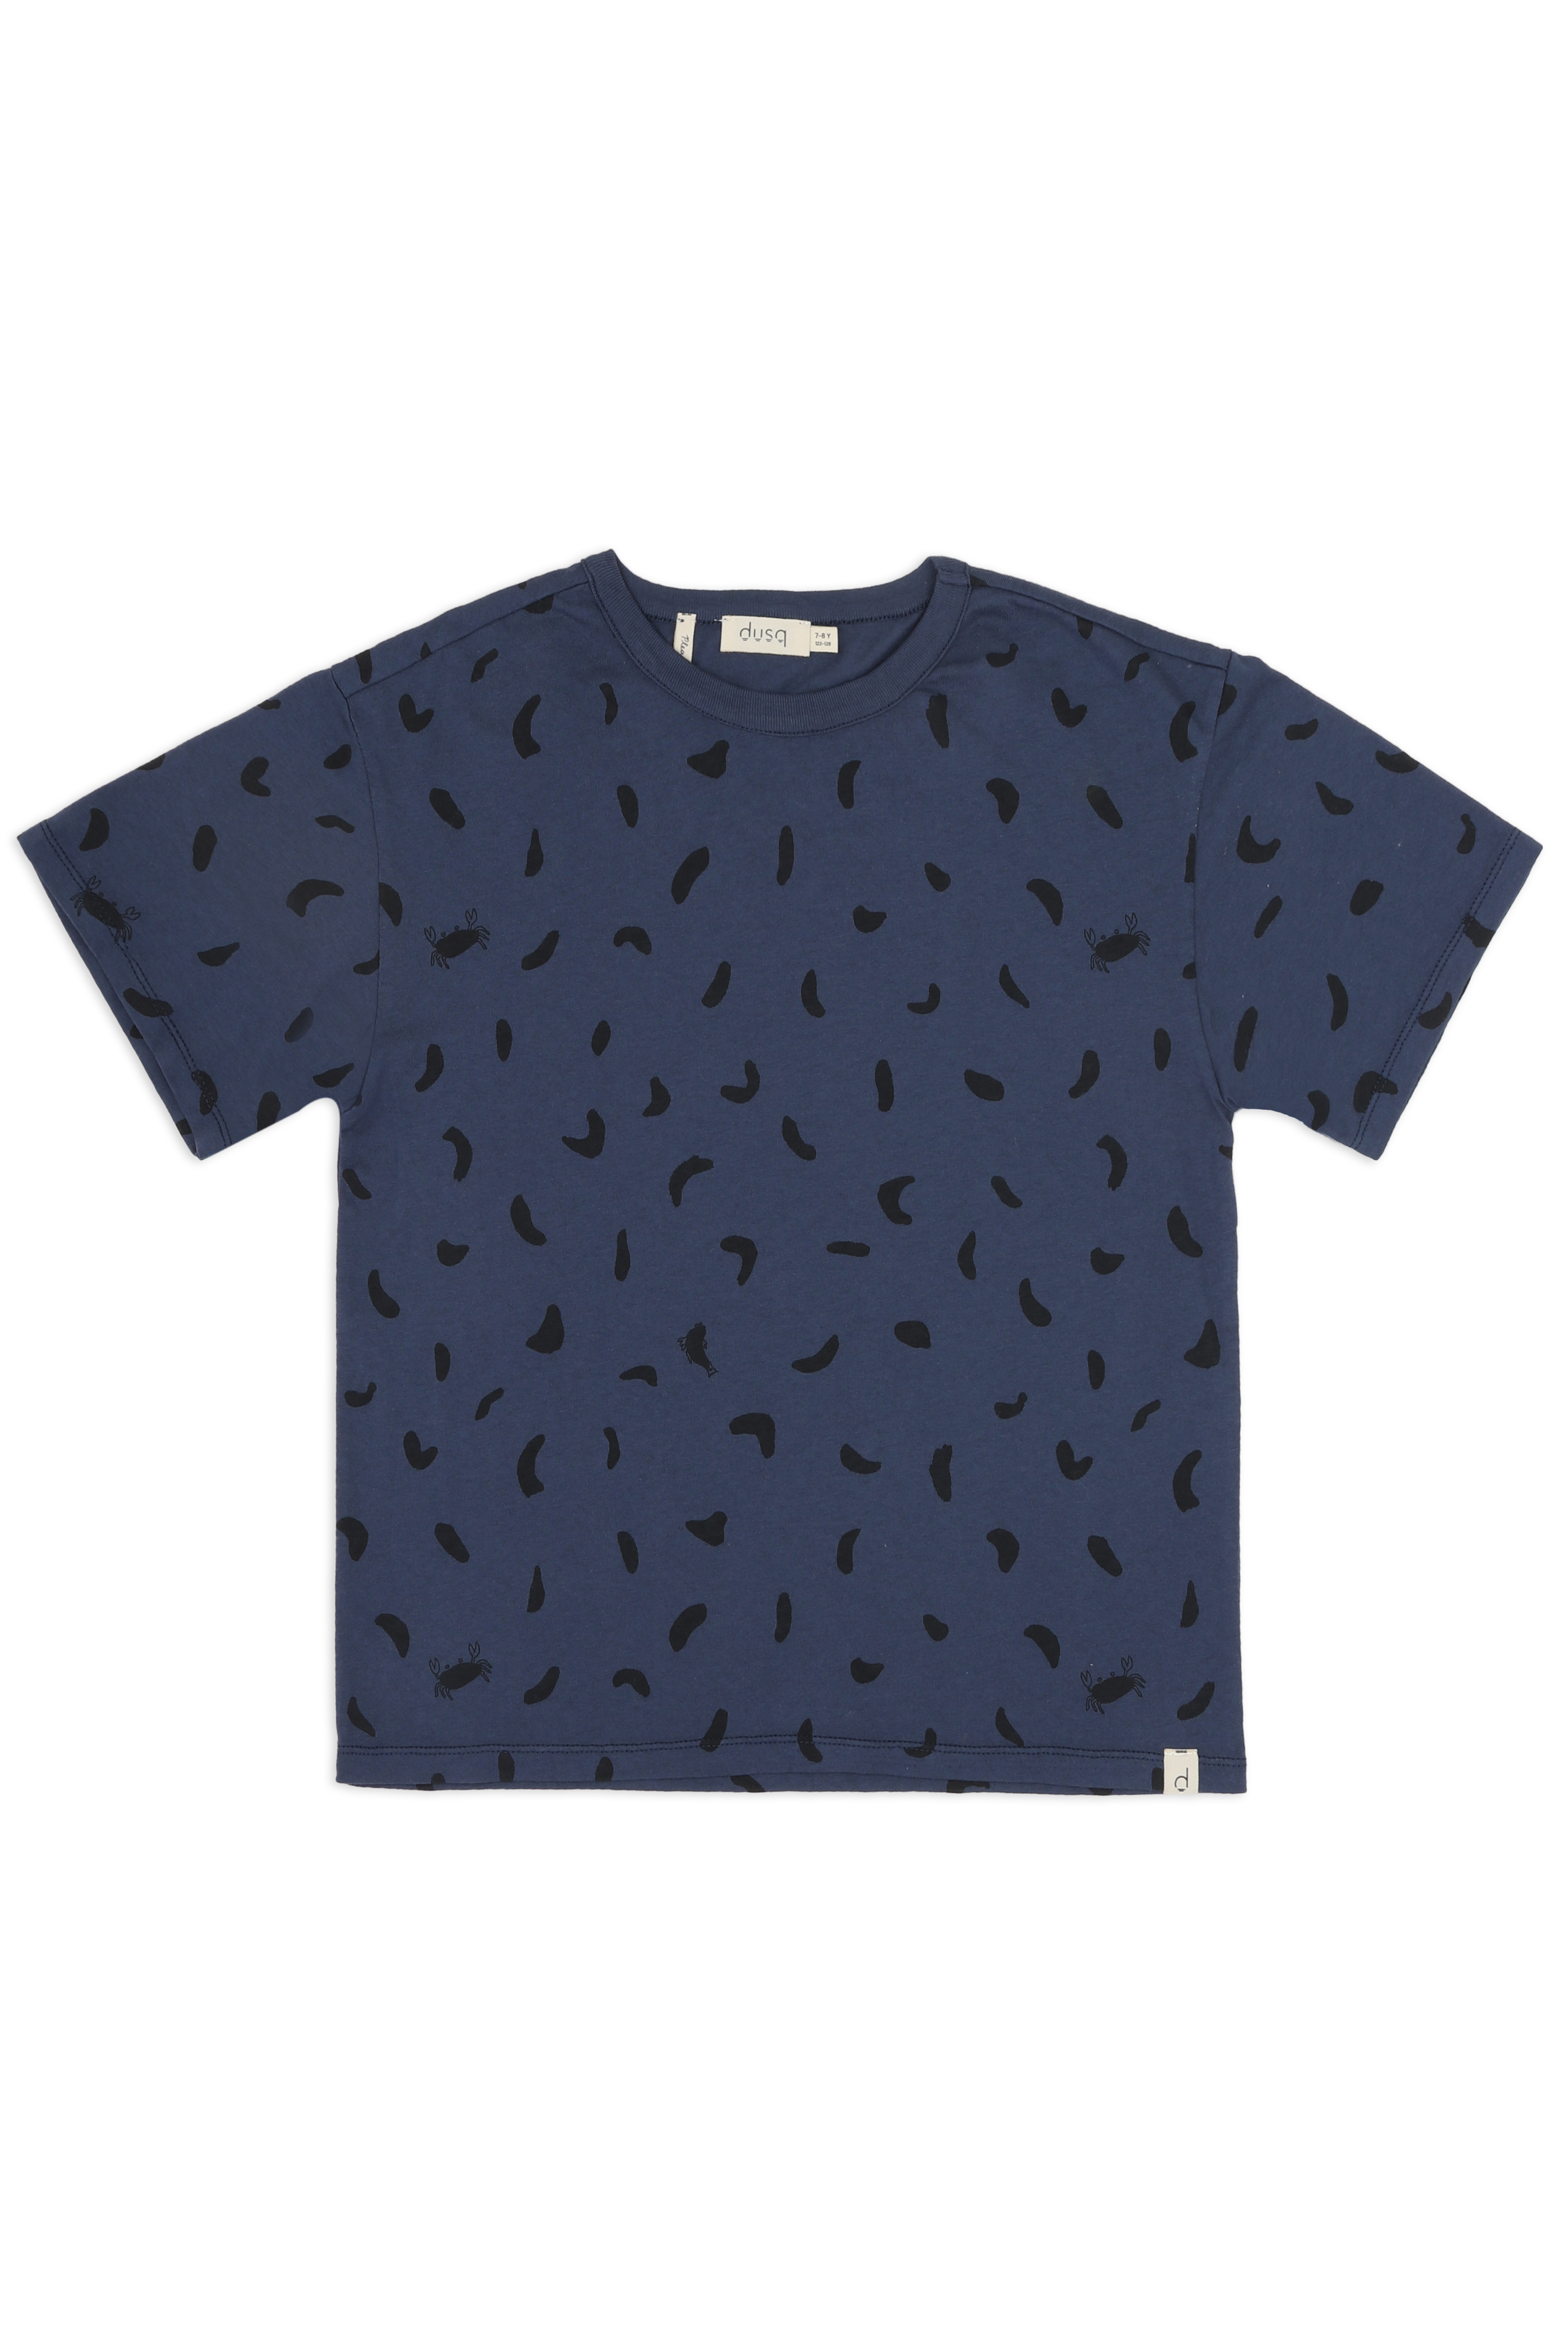 Kids-tee-sea-blue